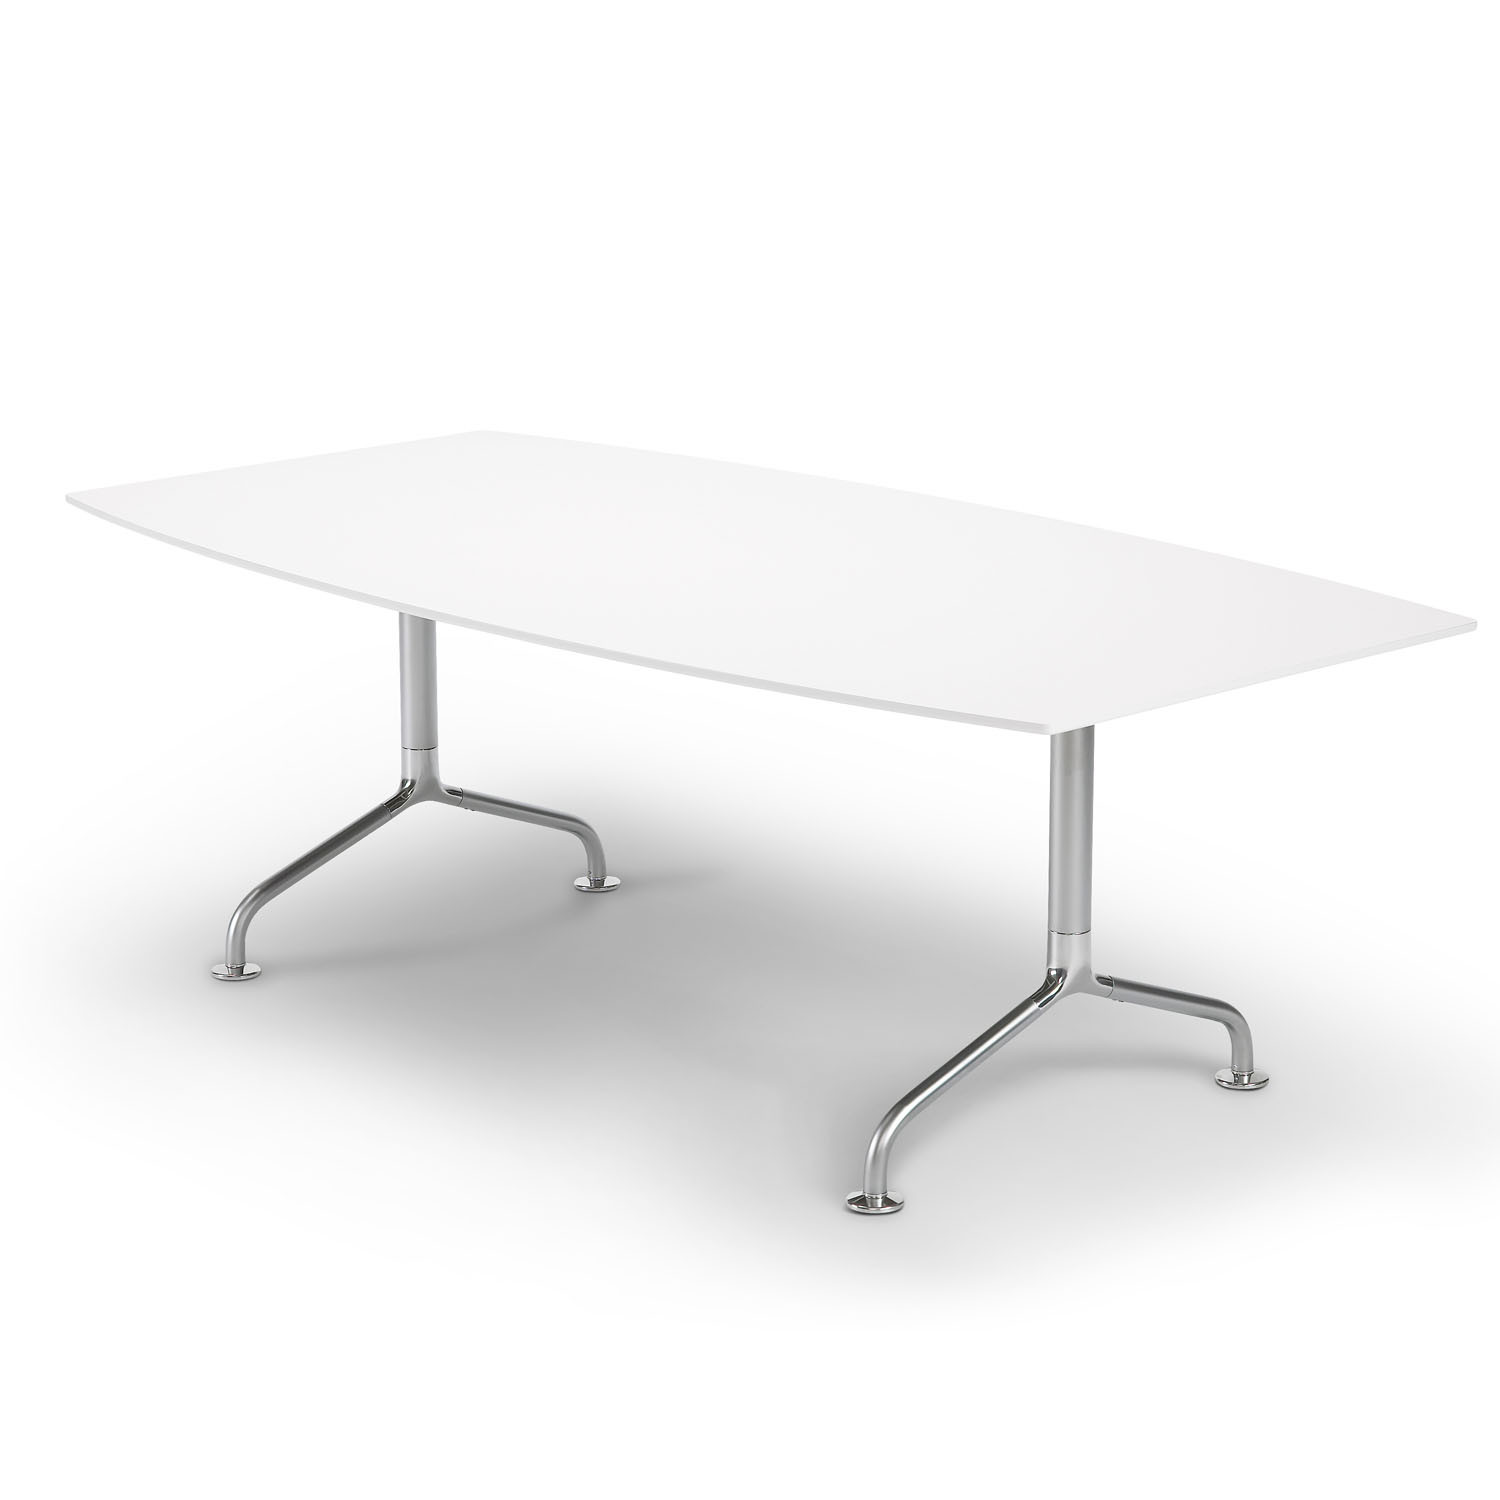 Ono Meeting Extra Wide Tables